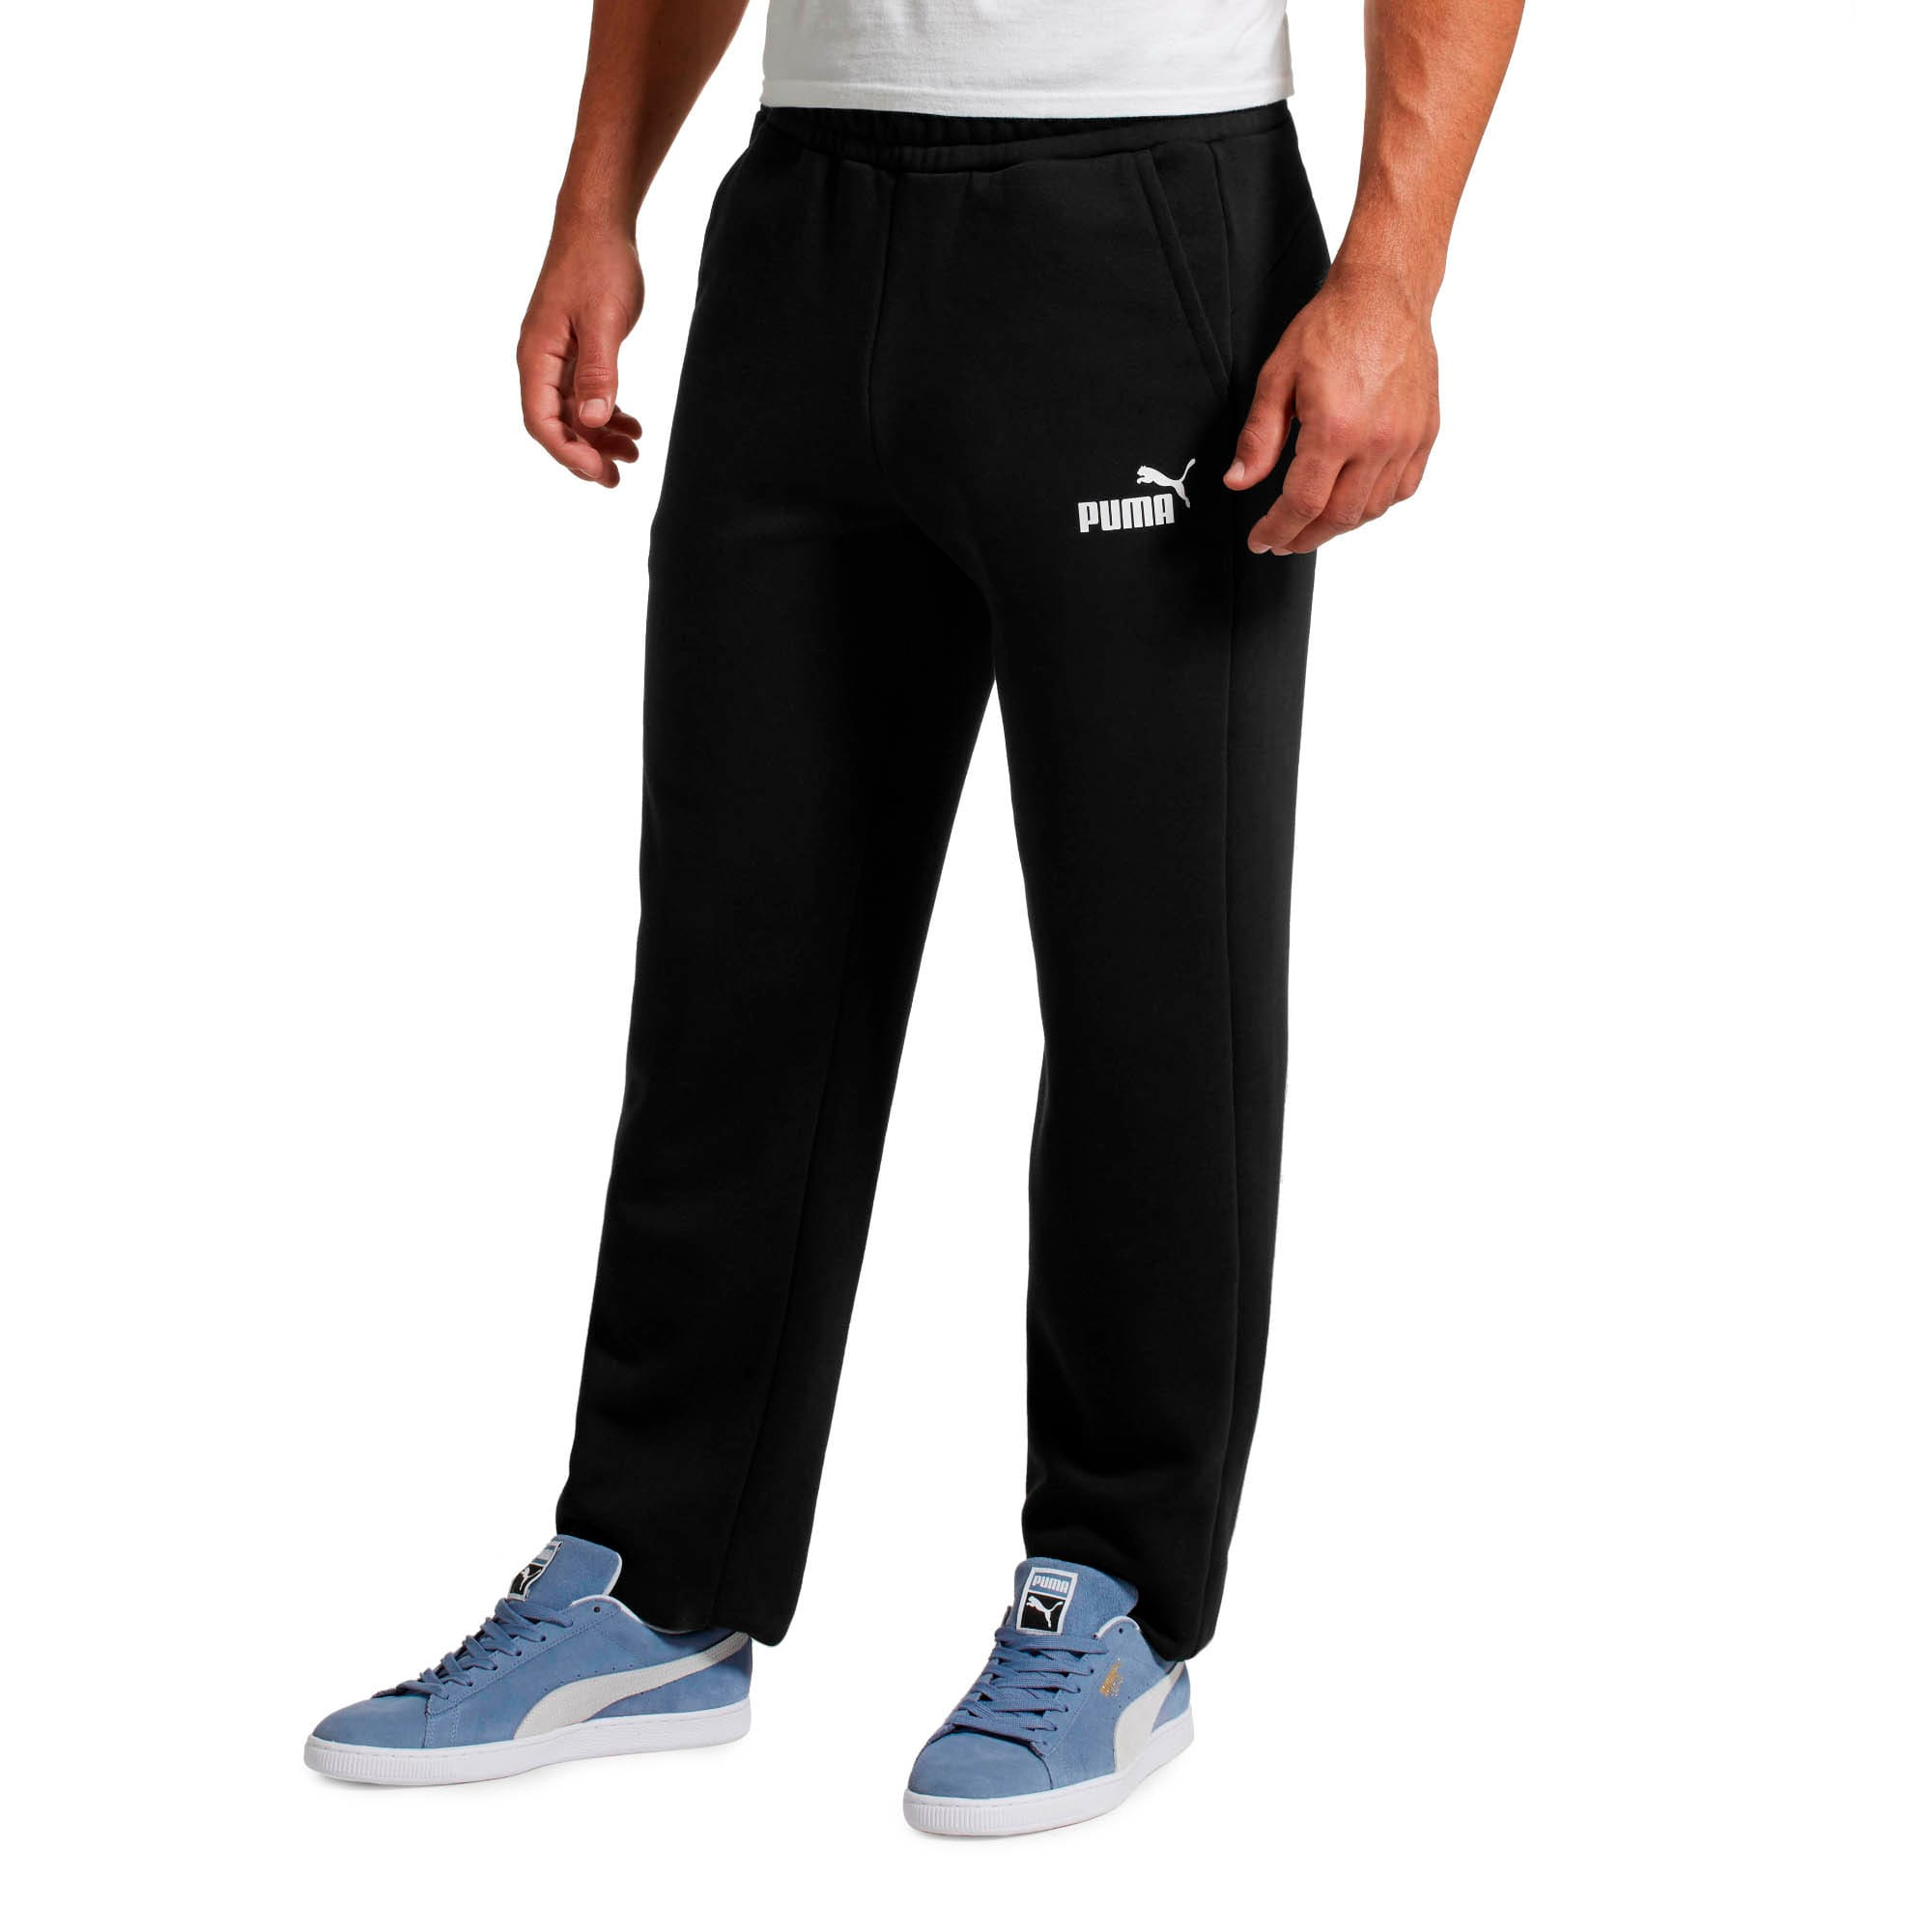 Thumbnail 2 of Eseential Logo Full-Length Pants, Puma Black, medium